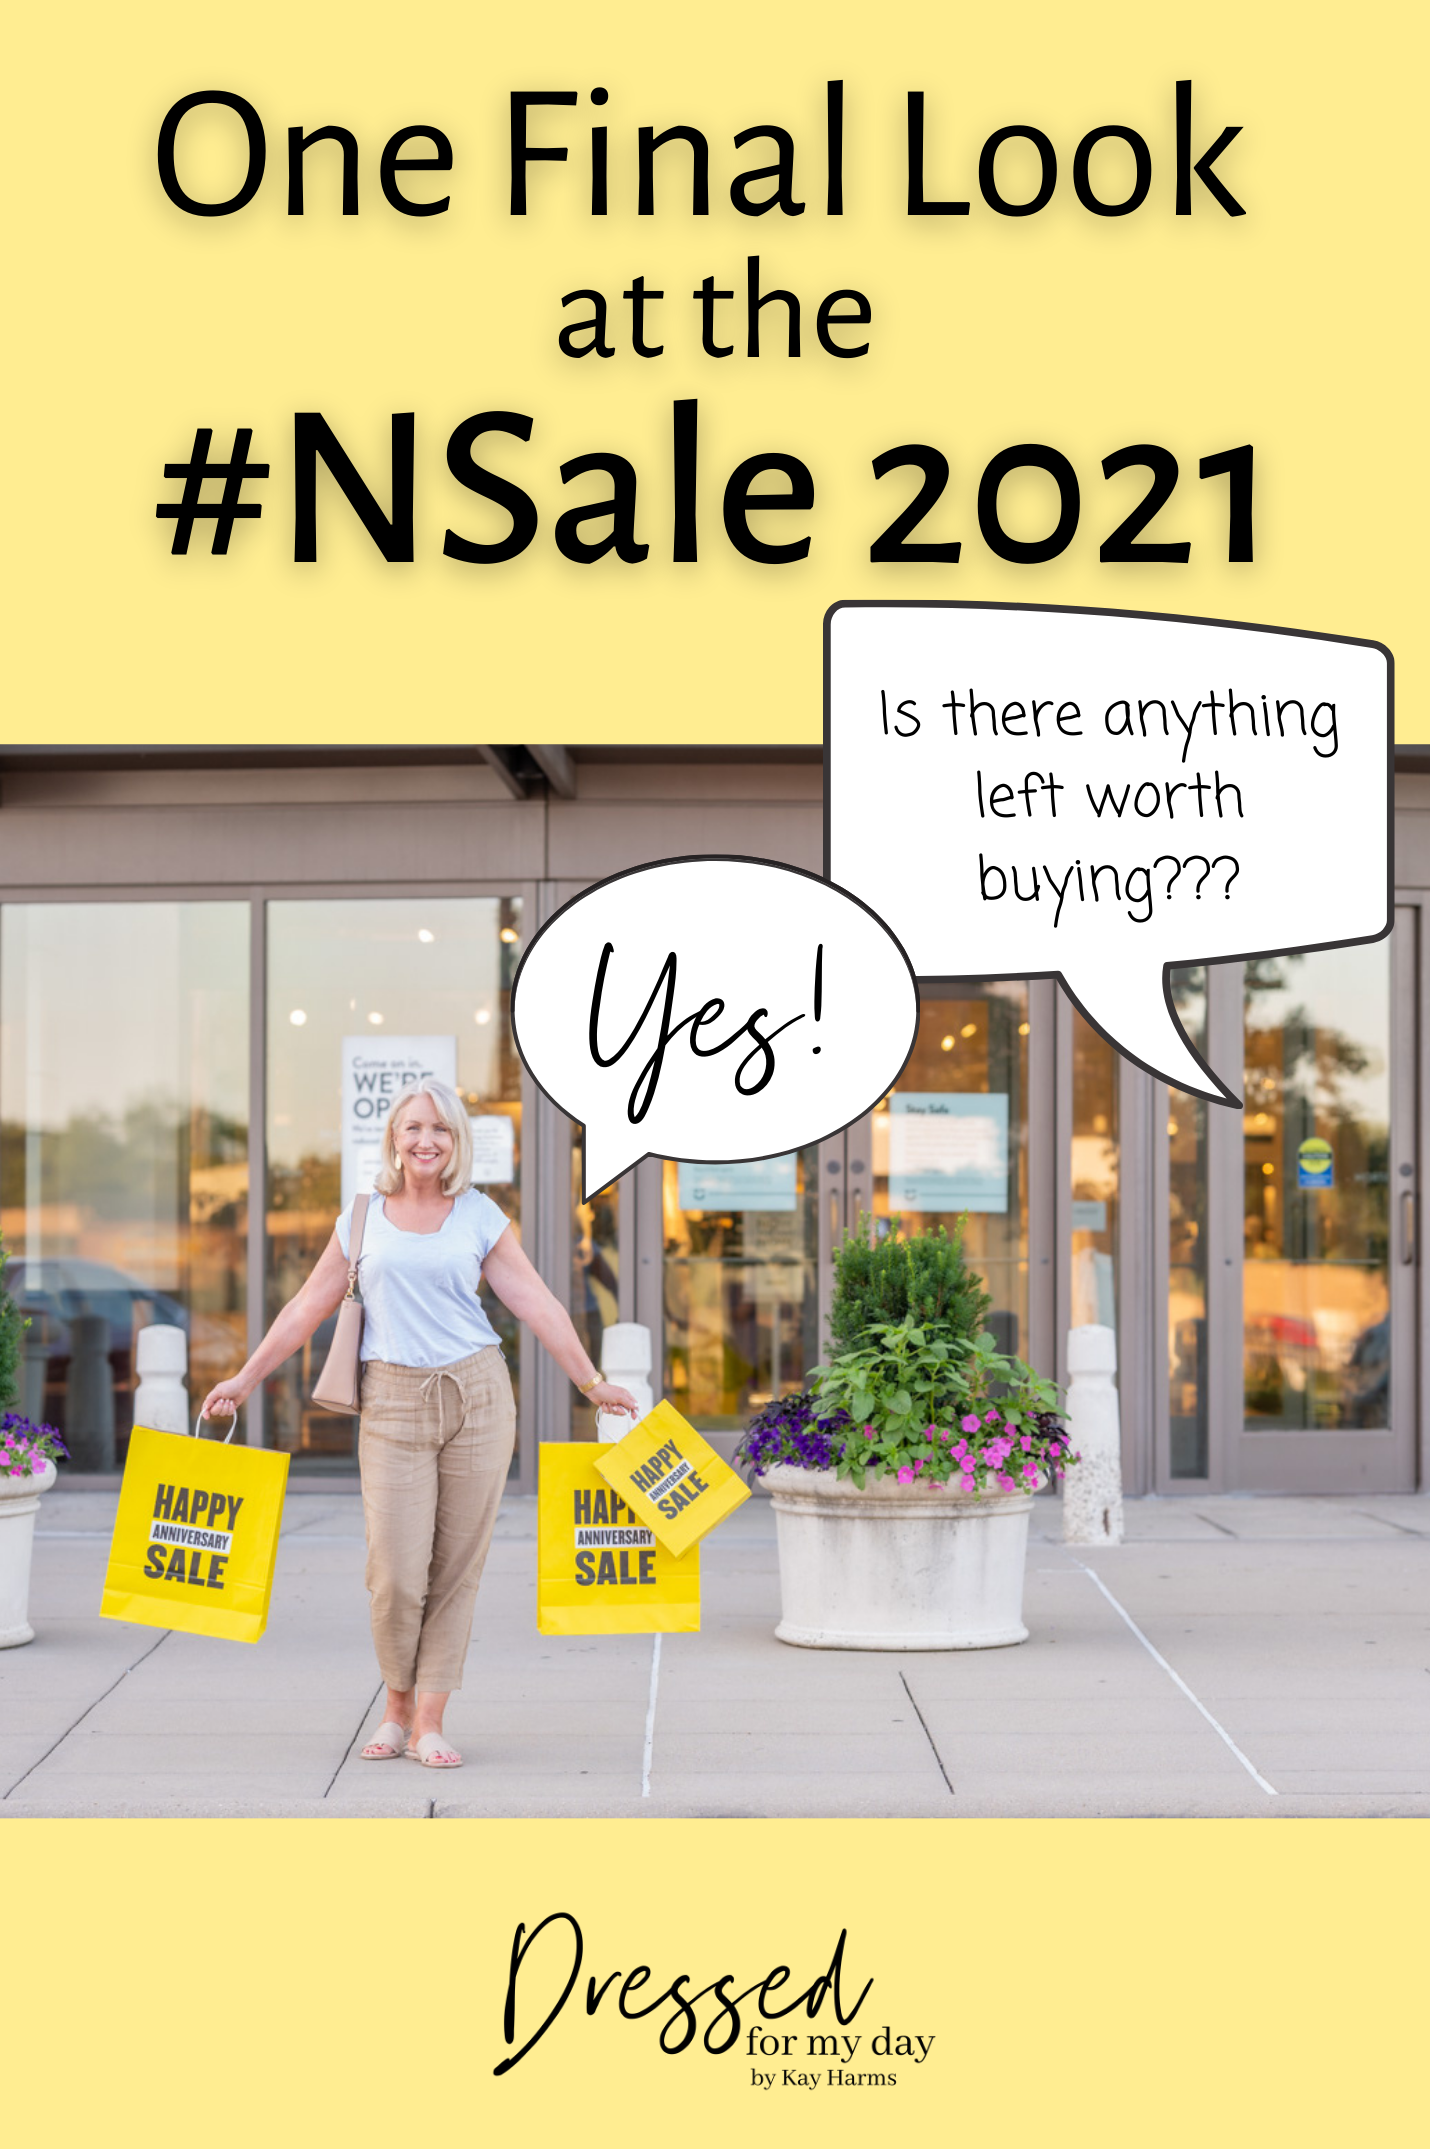 One Final Look at the #NSale 2021